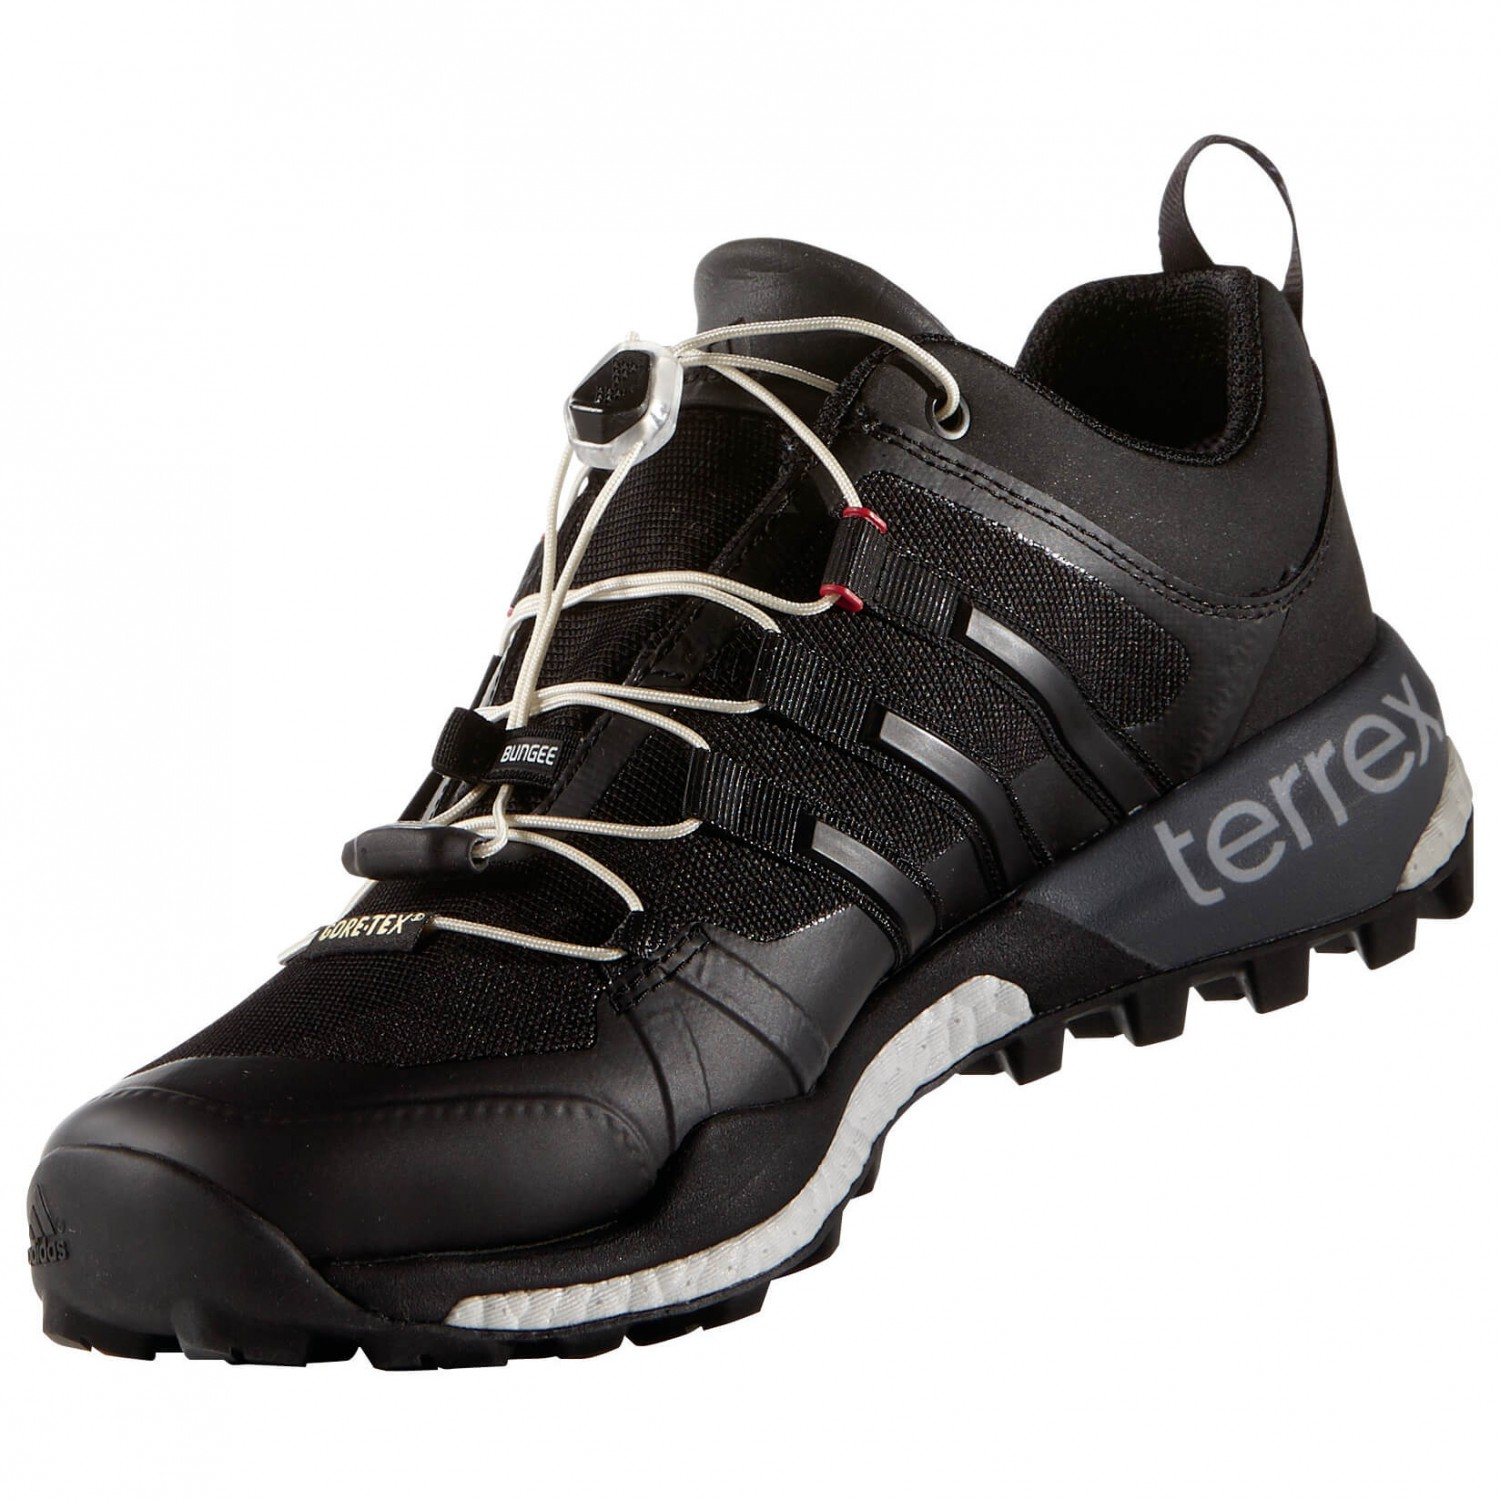 adidas terrex skychaser gtx approach shoes men 39 s buy. Black Bedroom Furniture Sets. Home Design Ideas